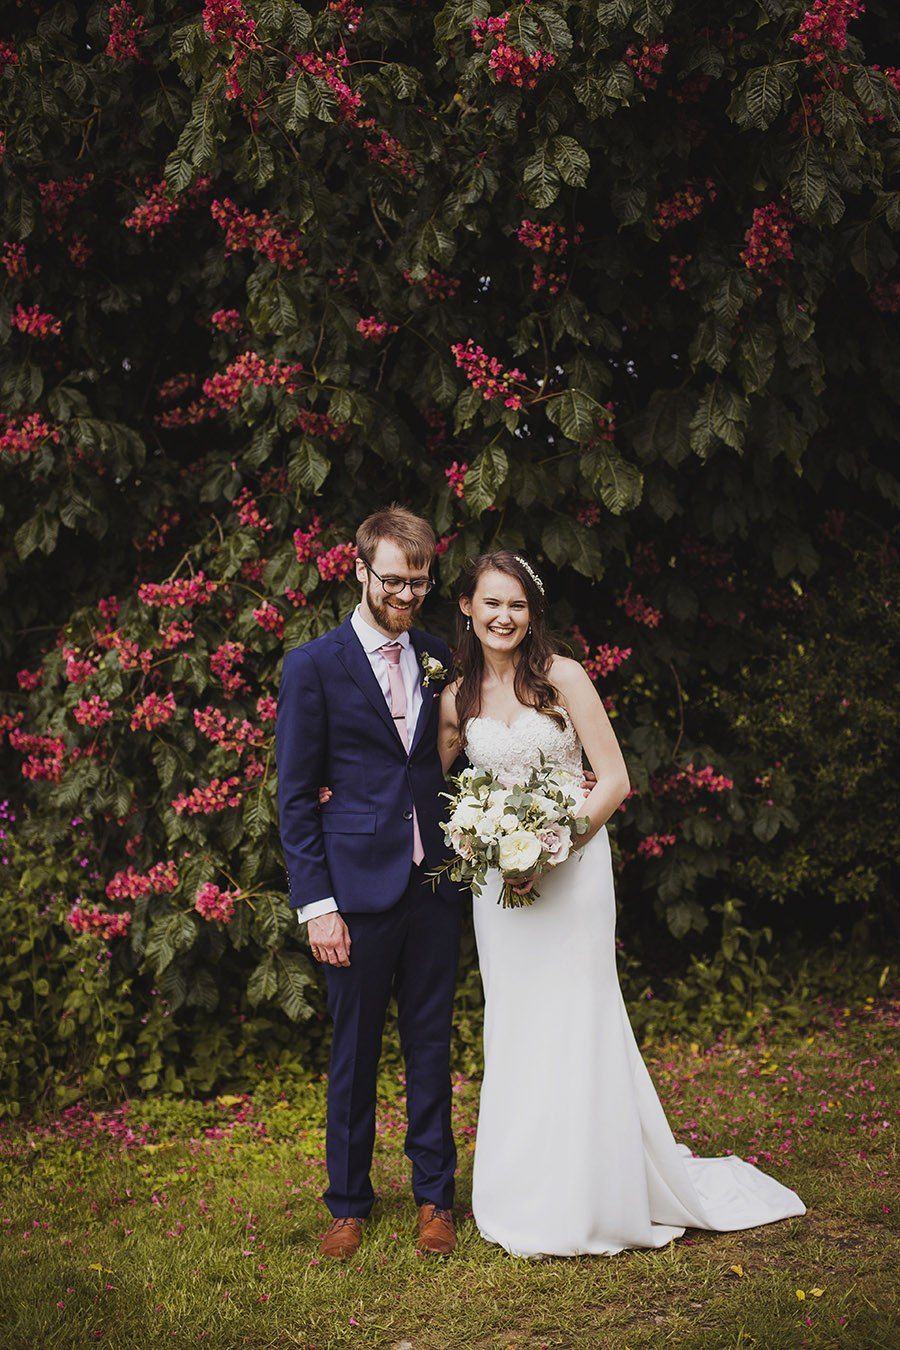 Relaxed outdoor wedding at Cott Farm Barn with images by Heather Birnie Photography on the English Wedding Blog (30)